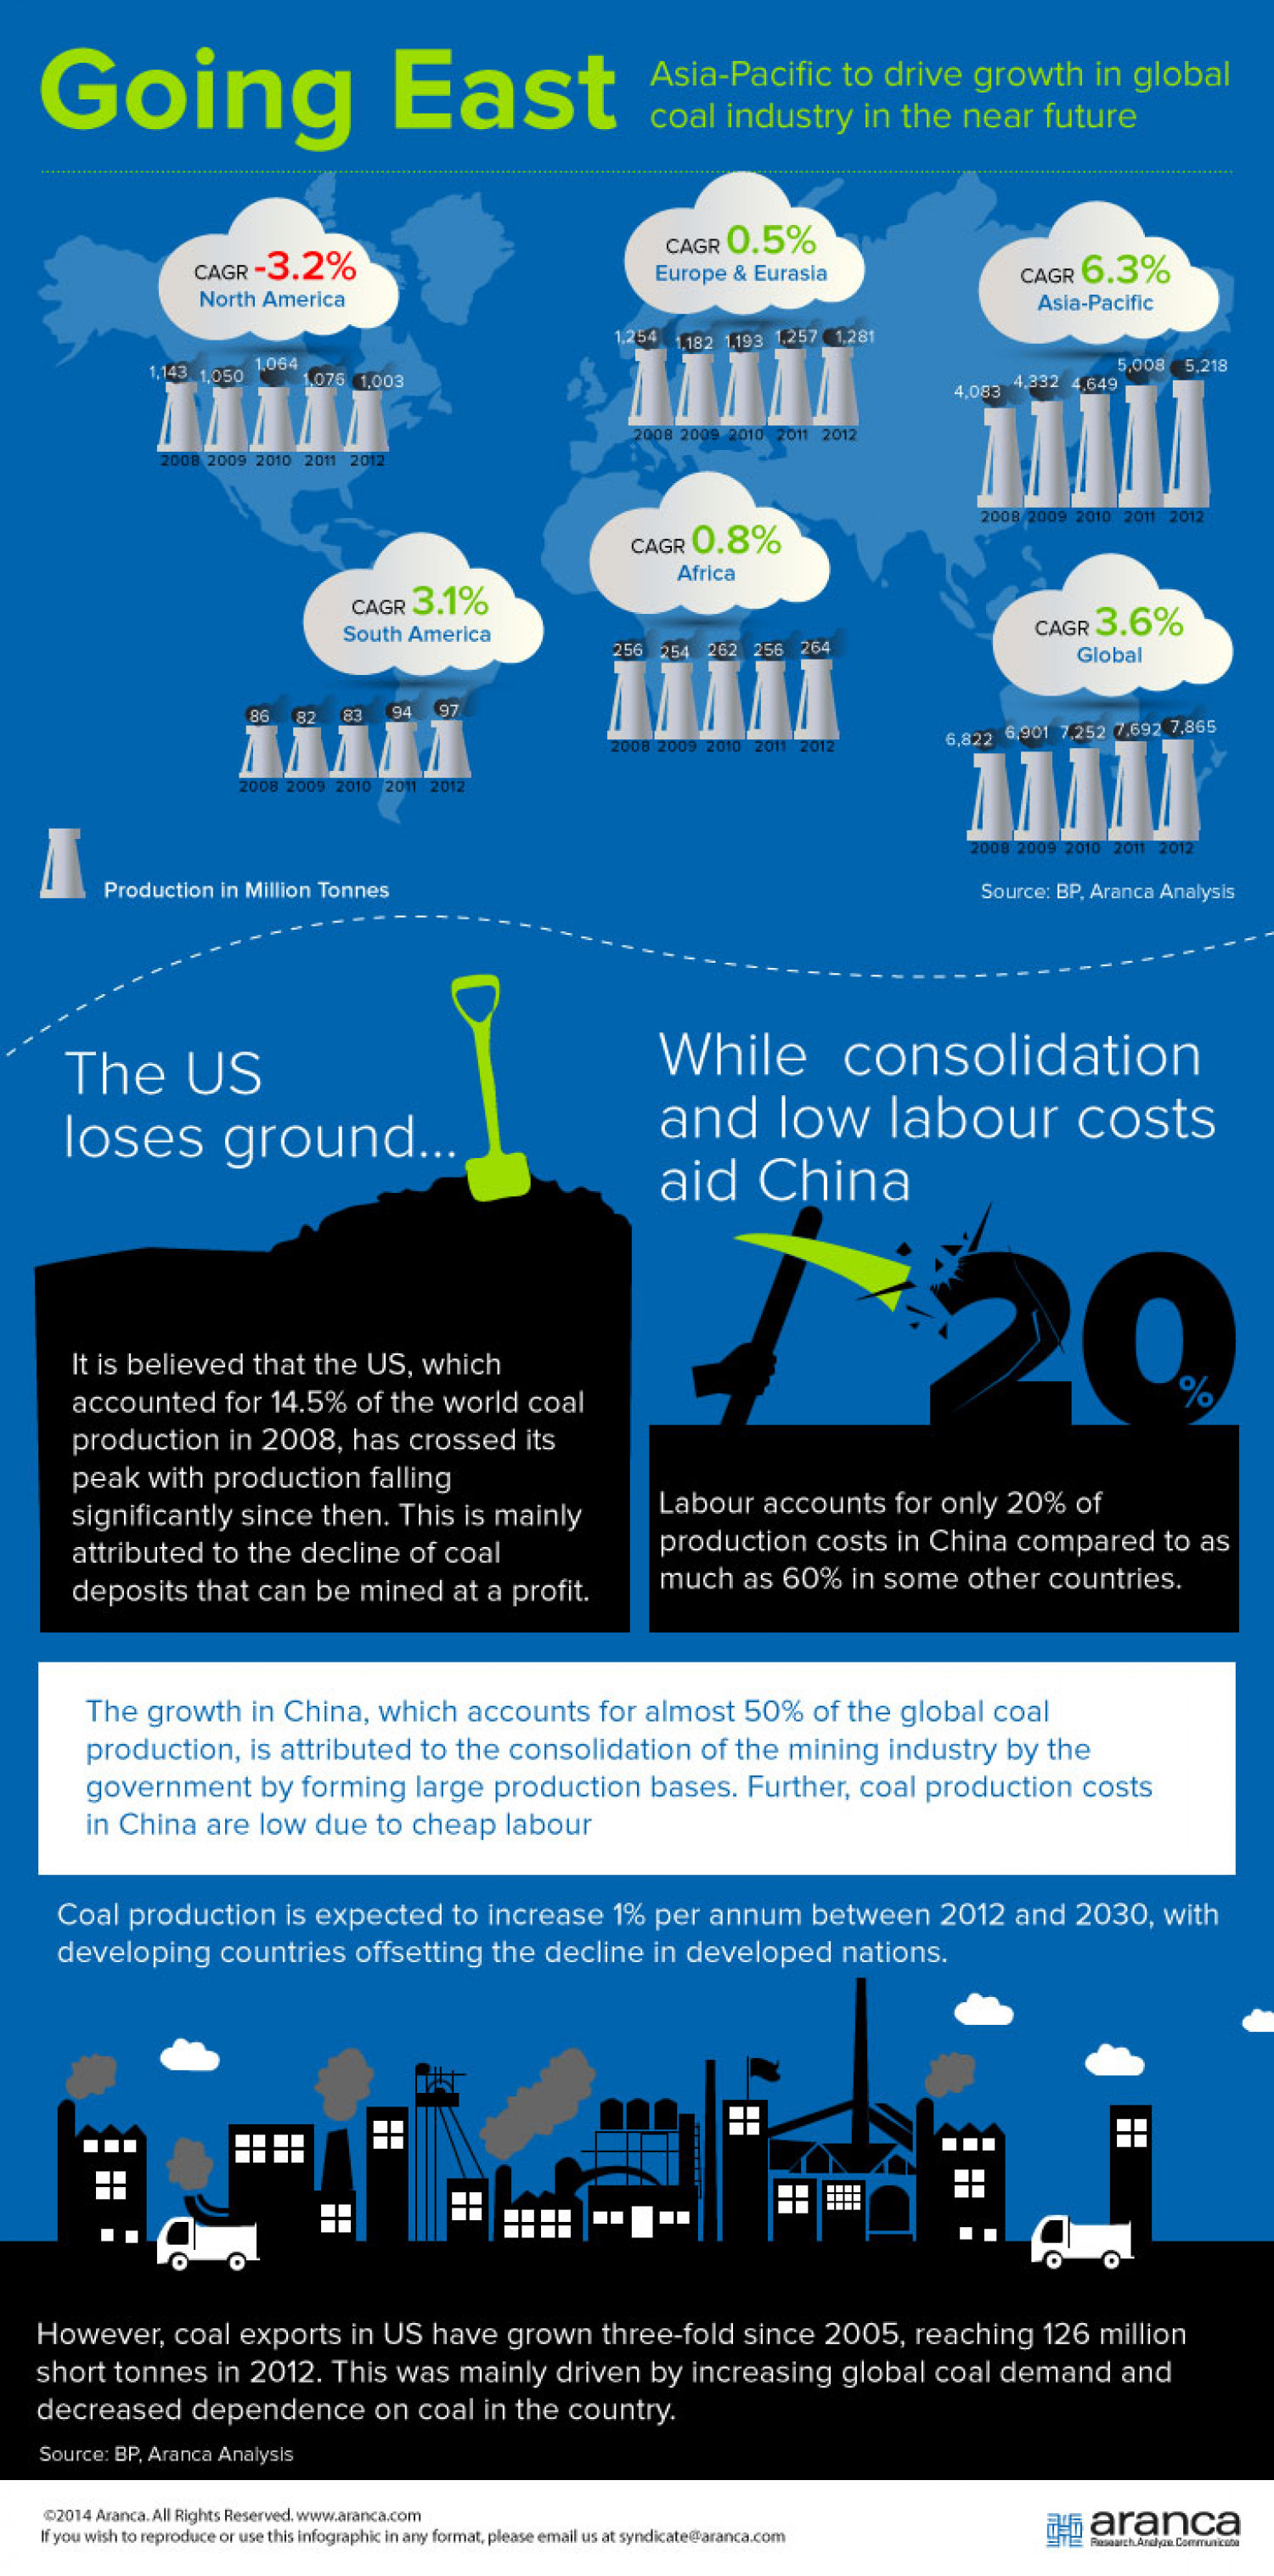 Aranca | Going East – Asia Pacific to Drive Growth in Global Coal Industry in the Near Future | Infographic Infographic